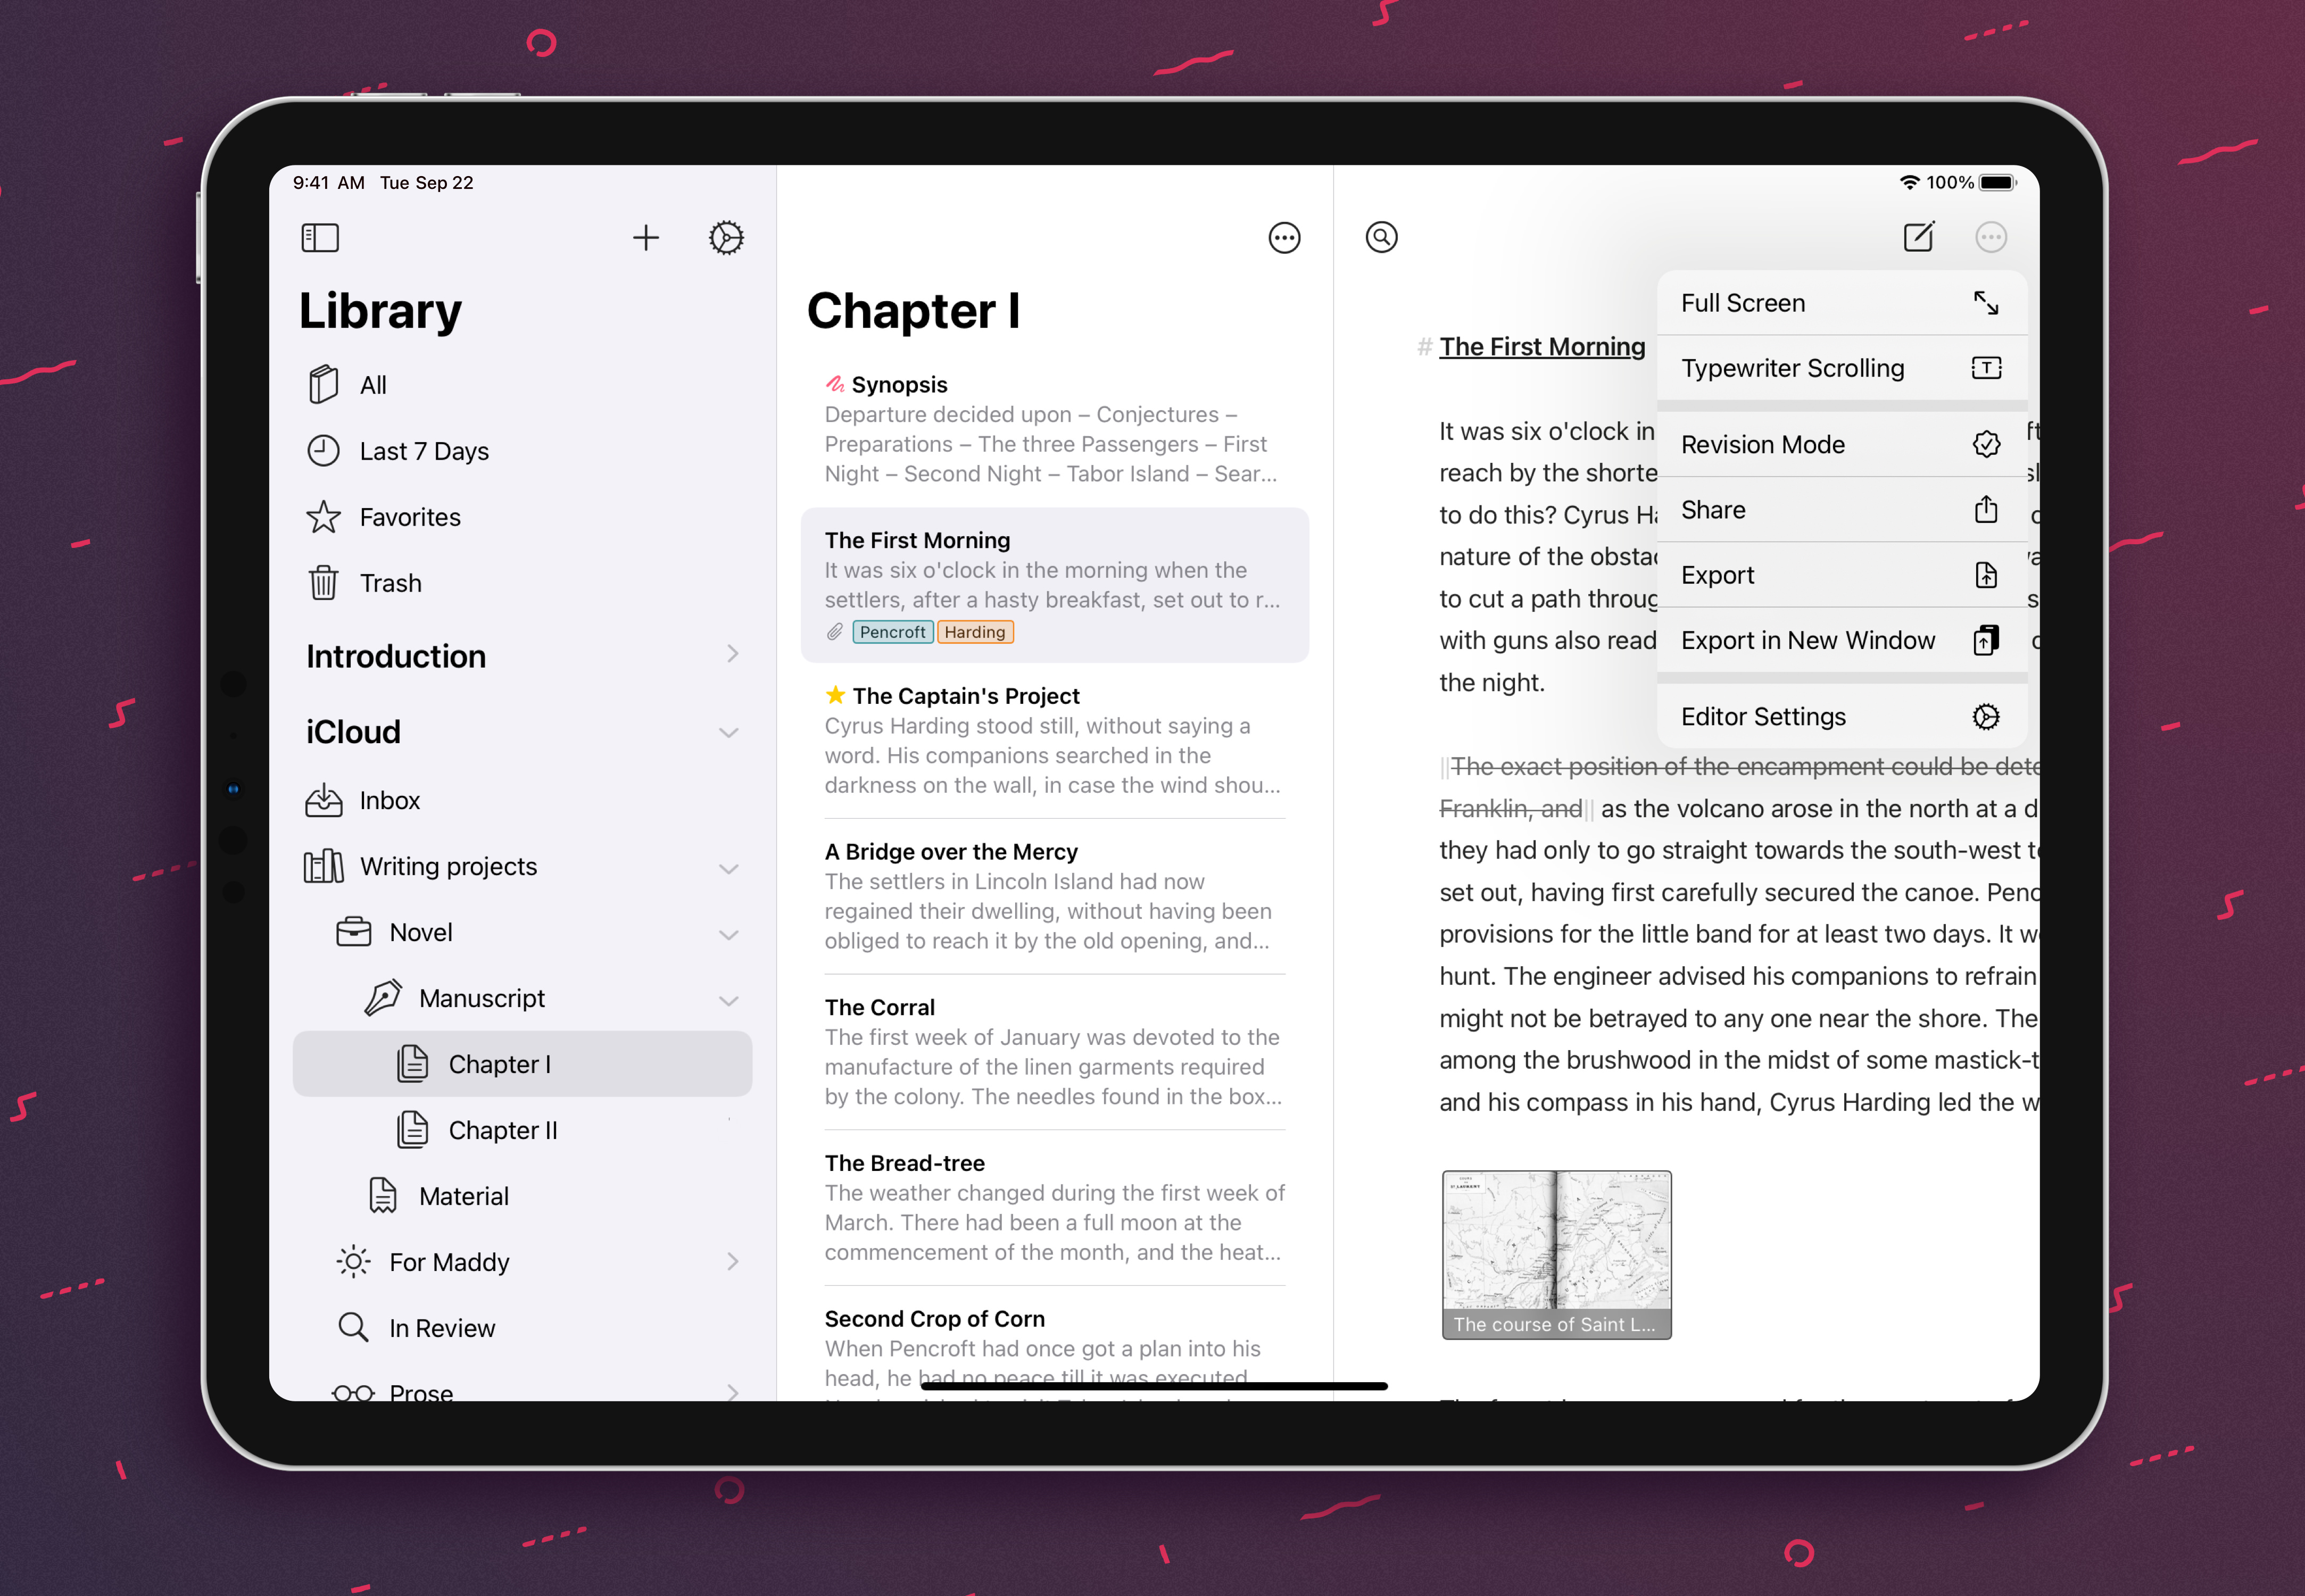 photo of Ulysses 21 Brings Advanced Grammar and Style Check to iPhone and iPad image